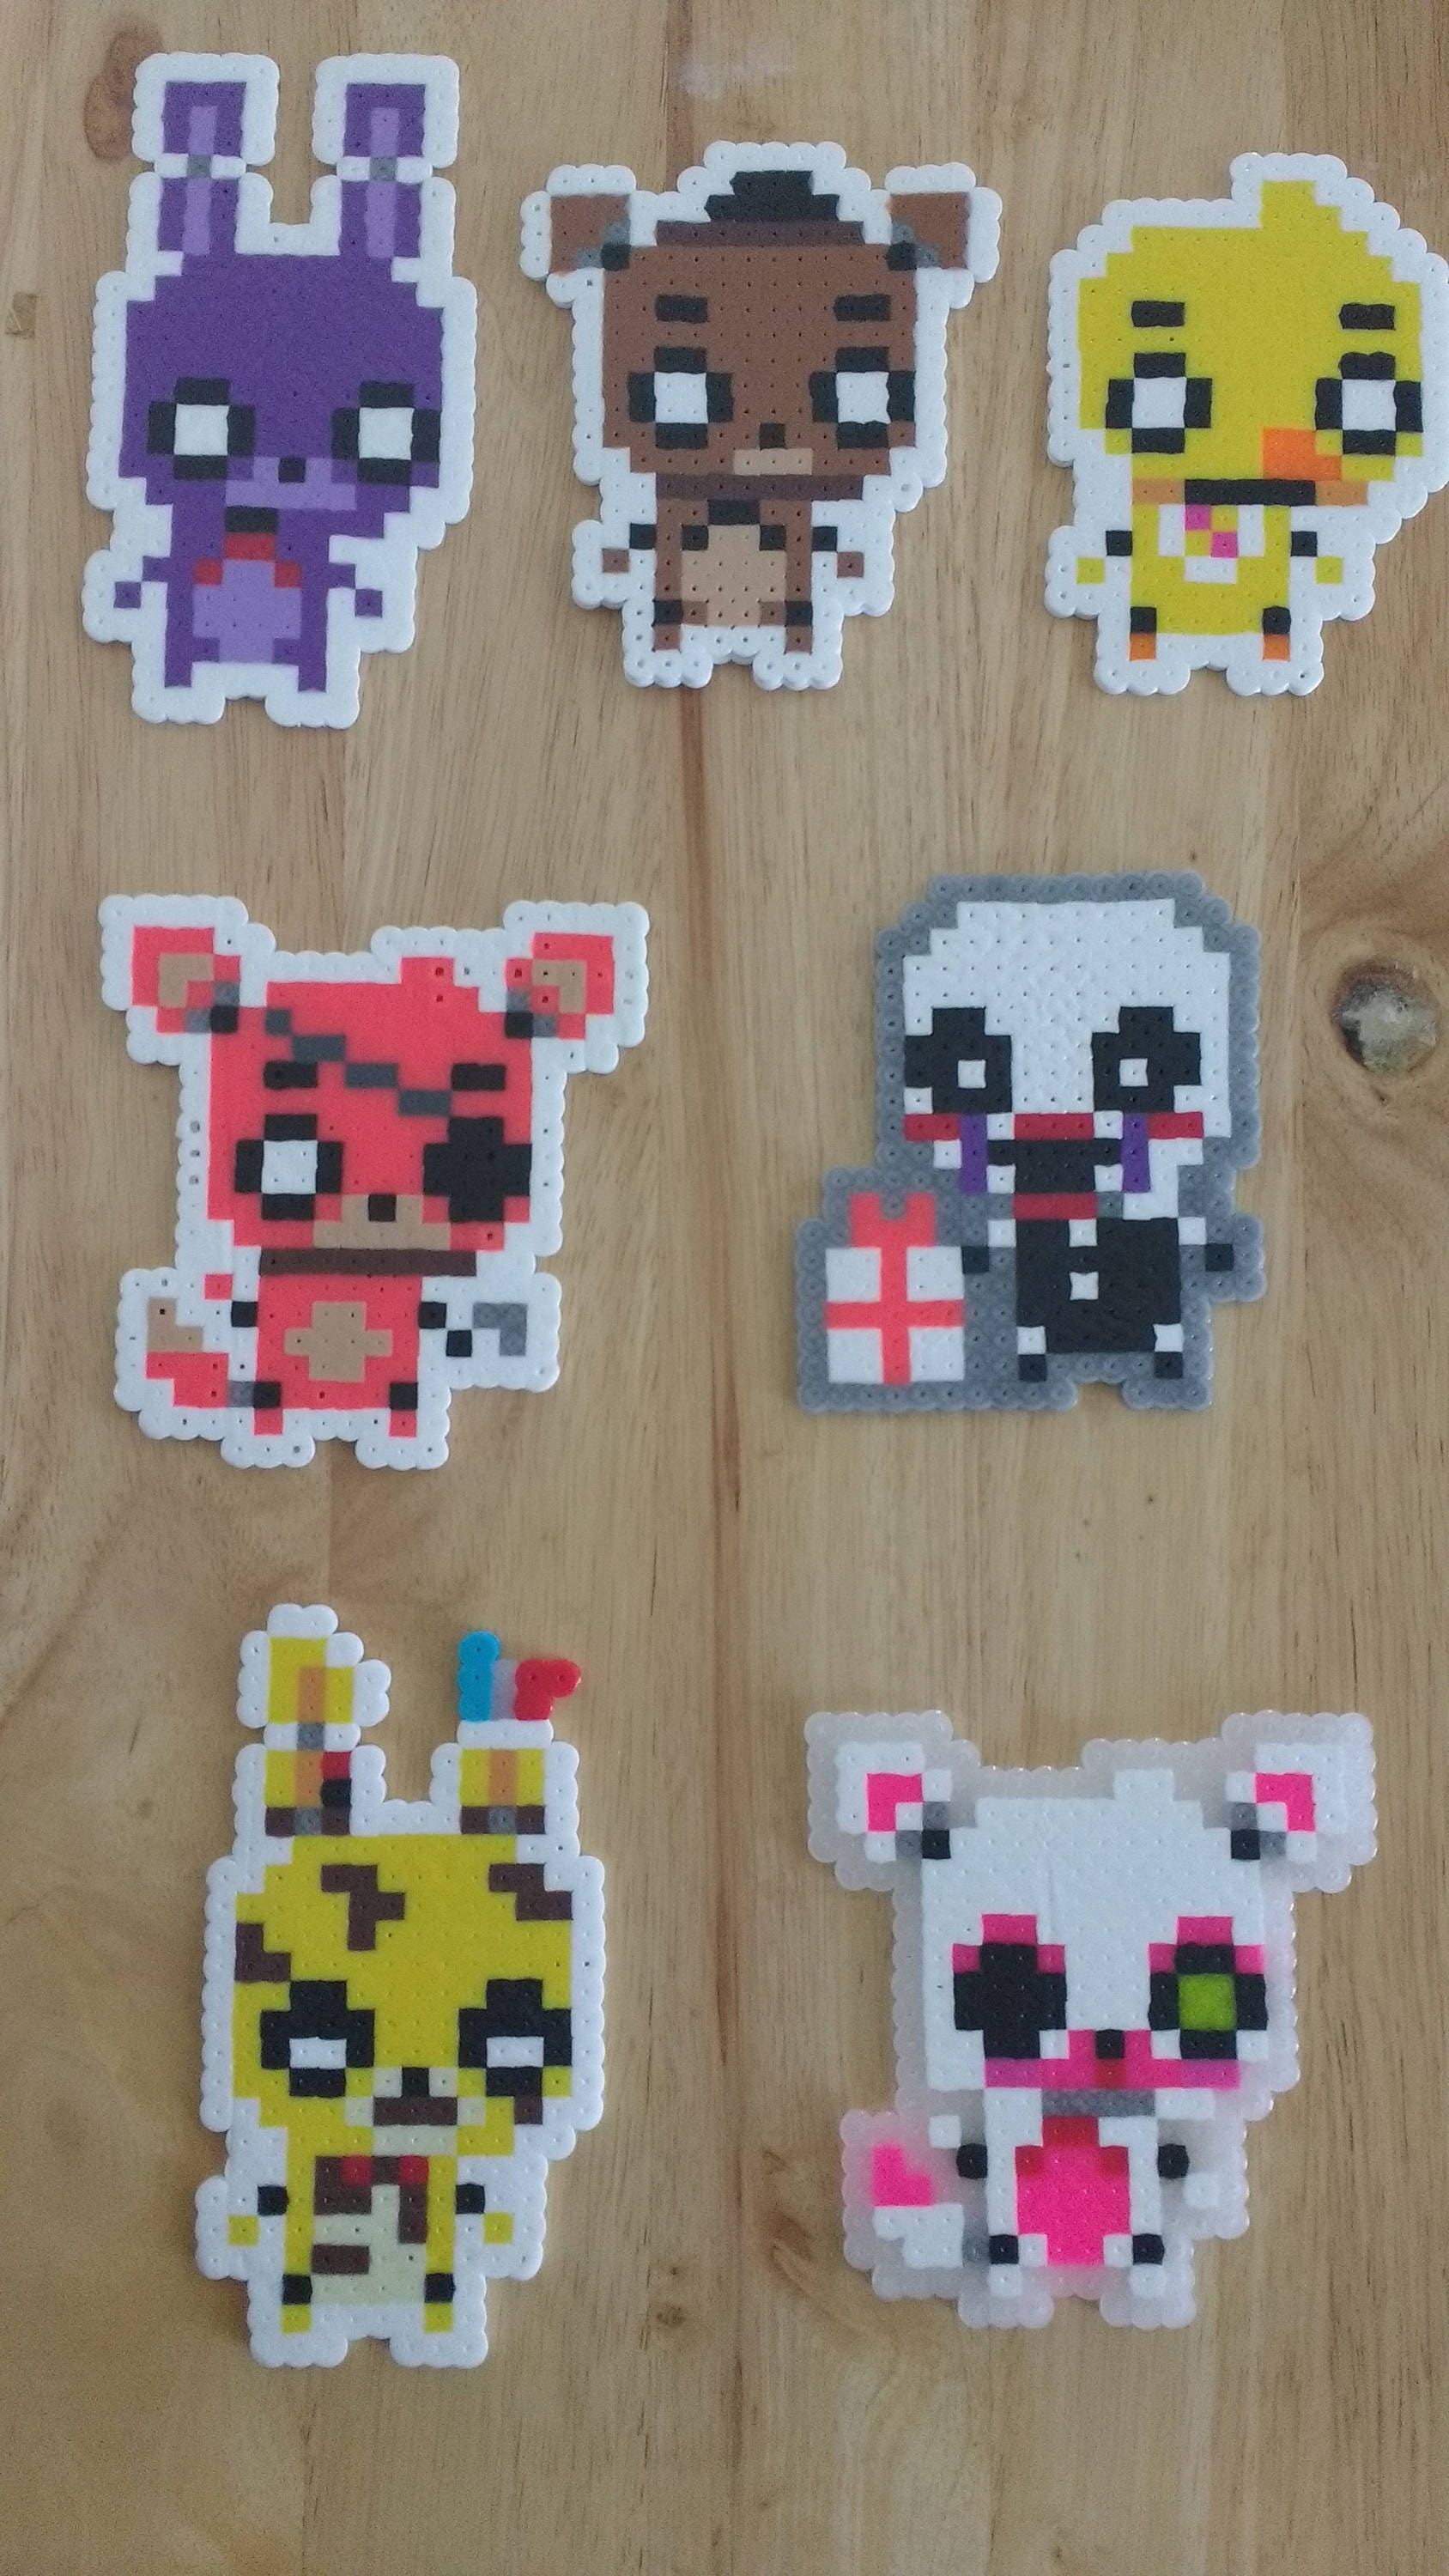 Five Nights At Freddy S Freddy Bonnie Foxy Chica Mangle Puppet Withered Bonnie And Springtrap 4 0x3 0 Perler Bead Art Pixel Fnaf